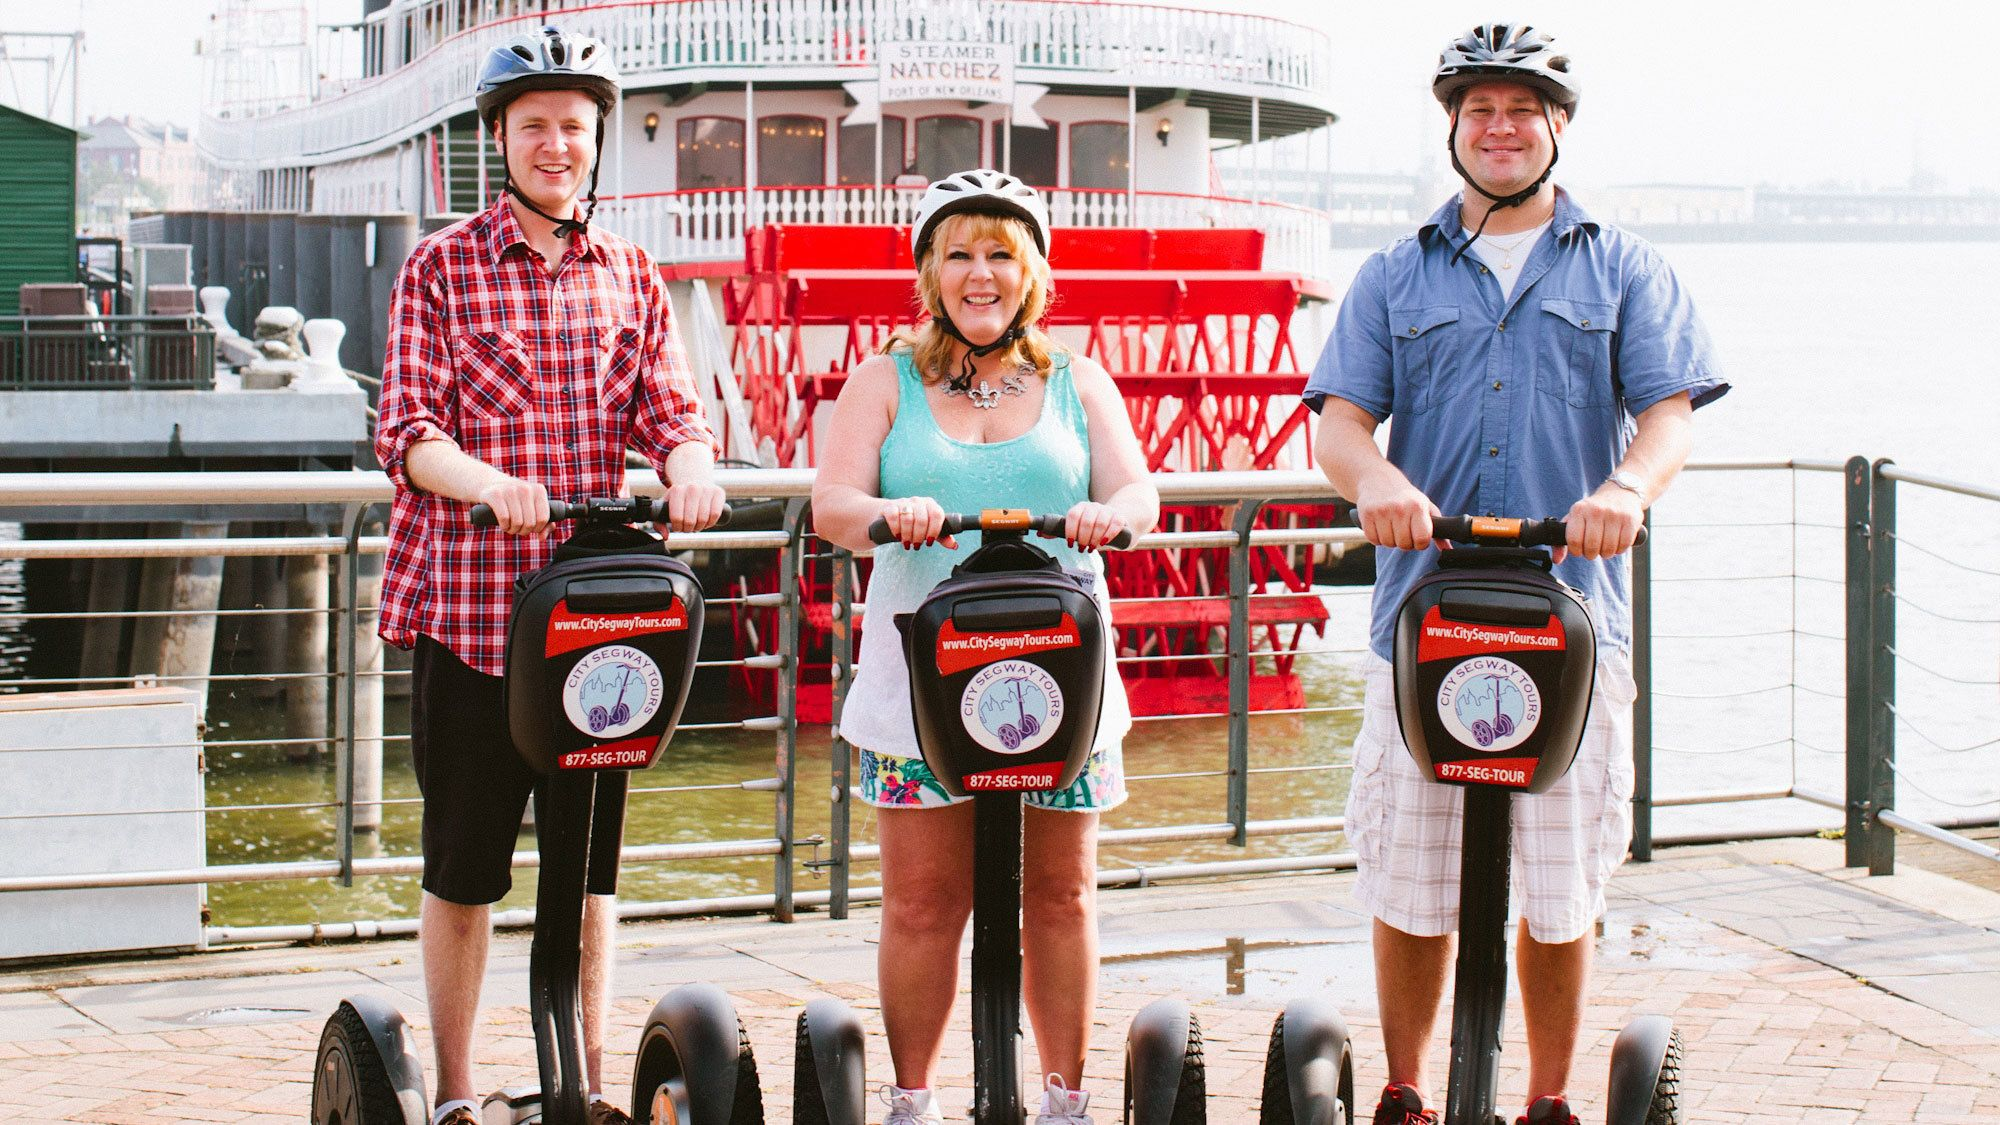 three people touring New Orleans on segways